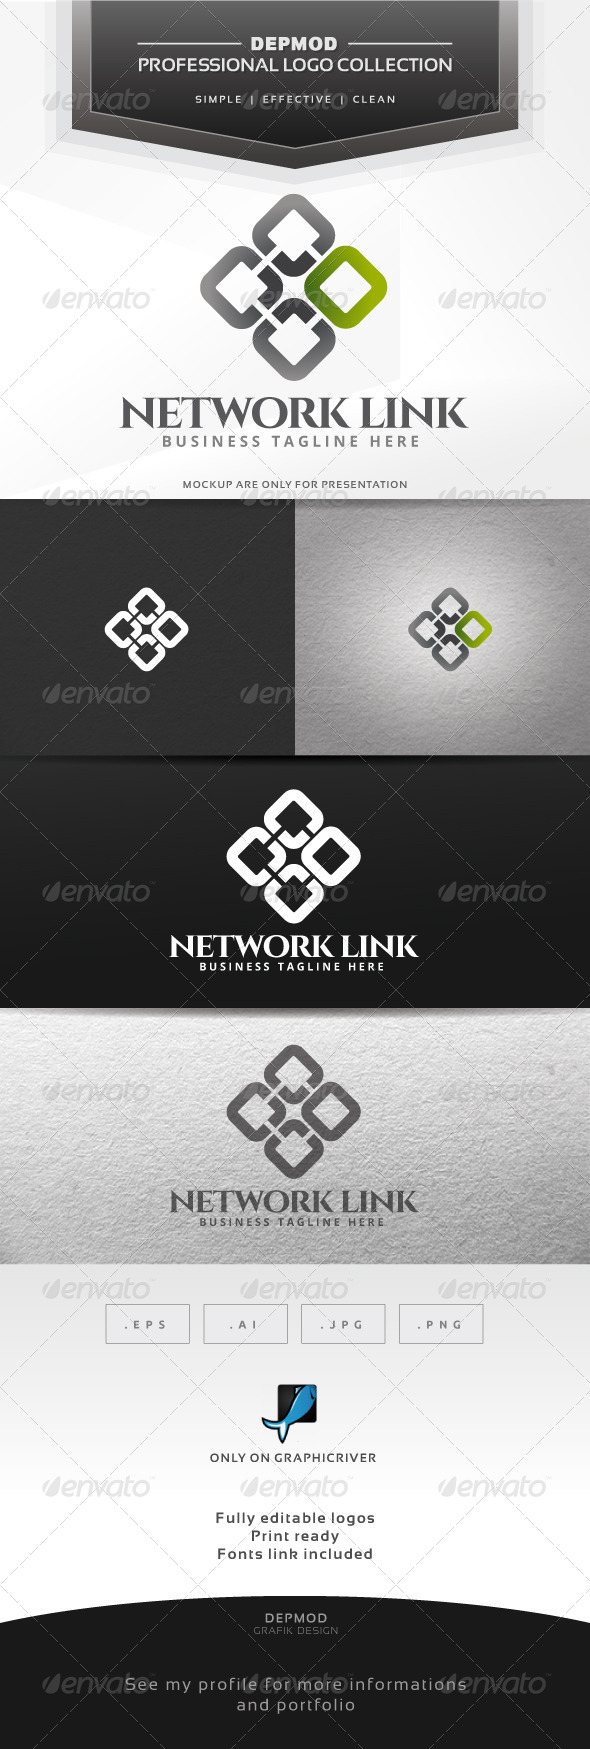 Network Link Logo - Abstract Logo Templates